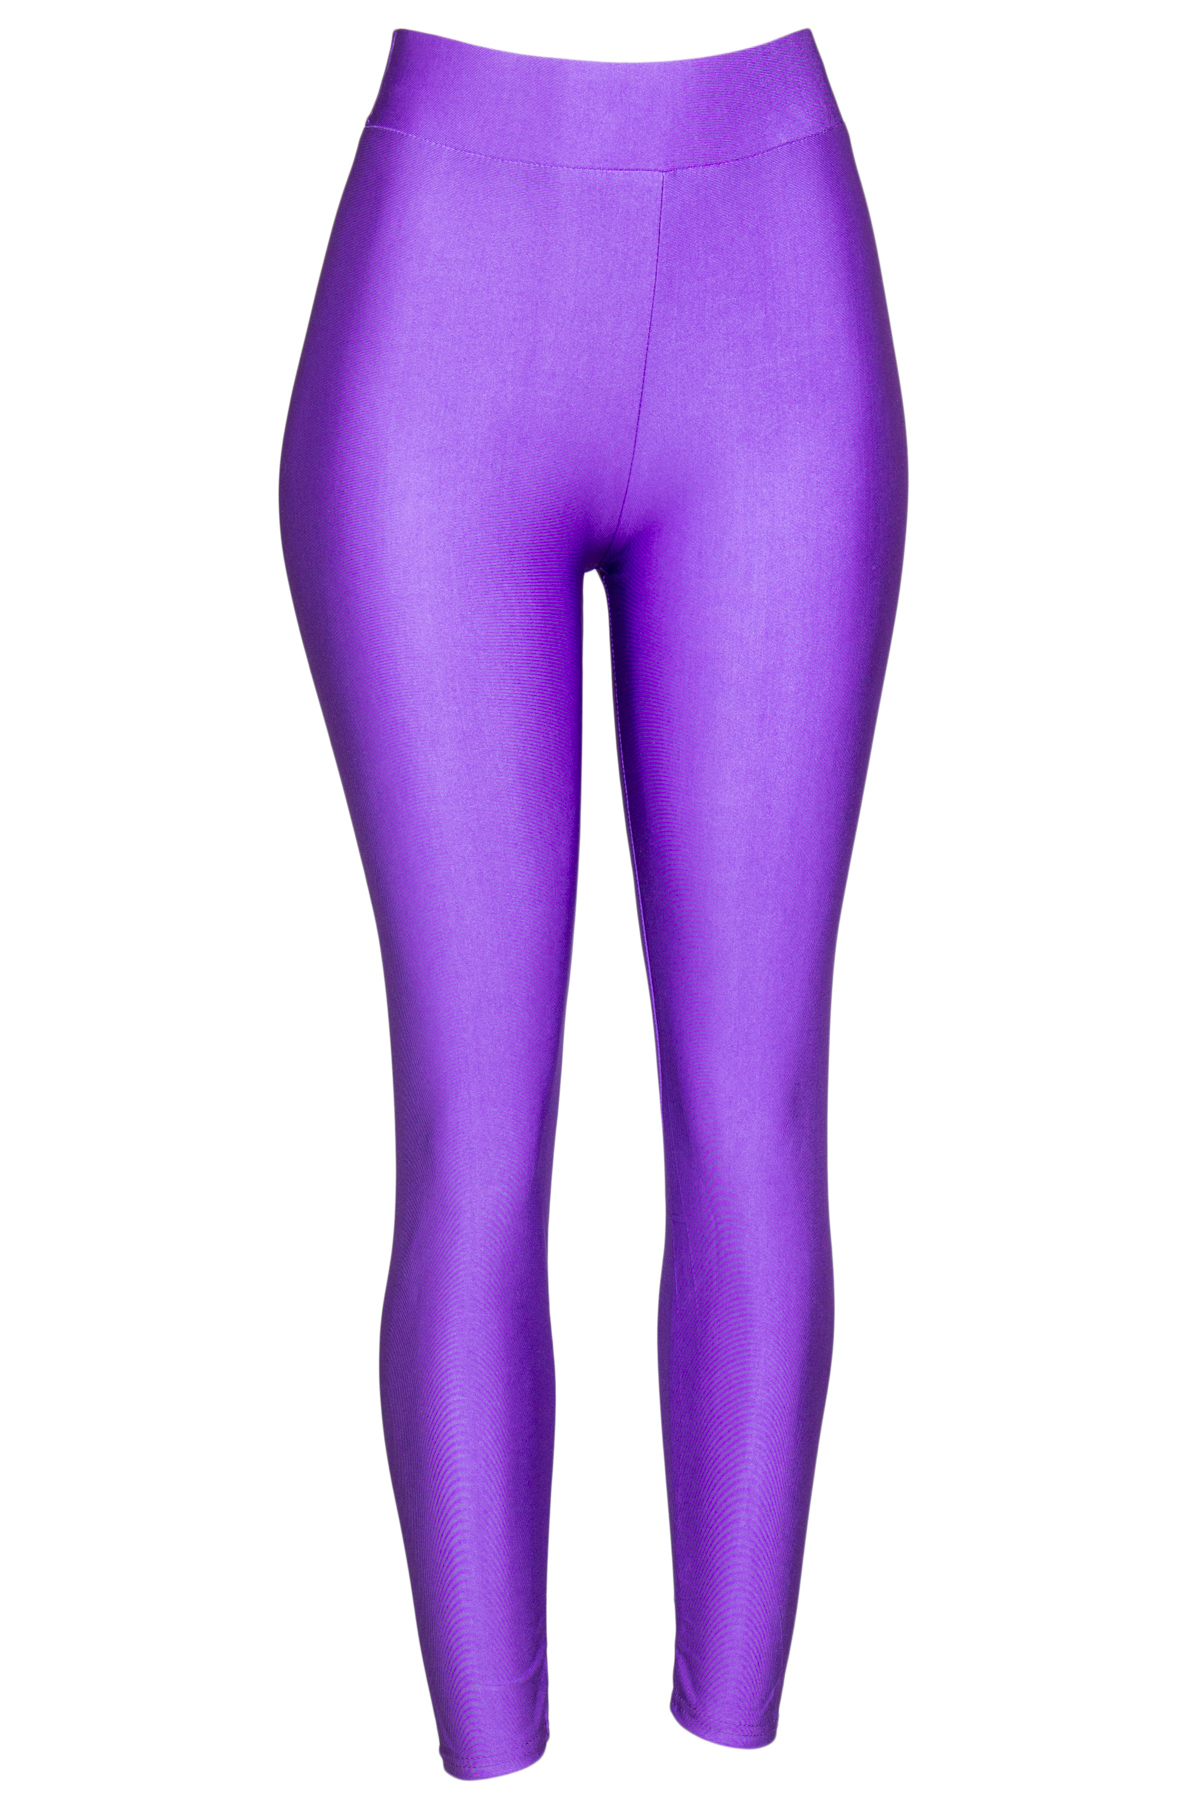 purple shiny leggings